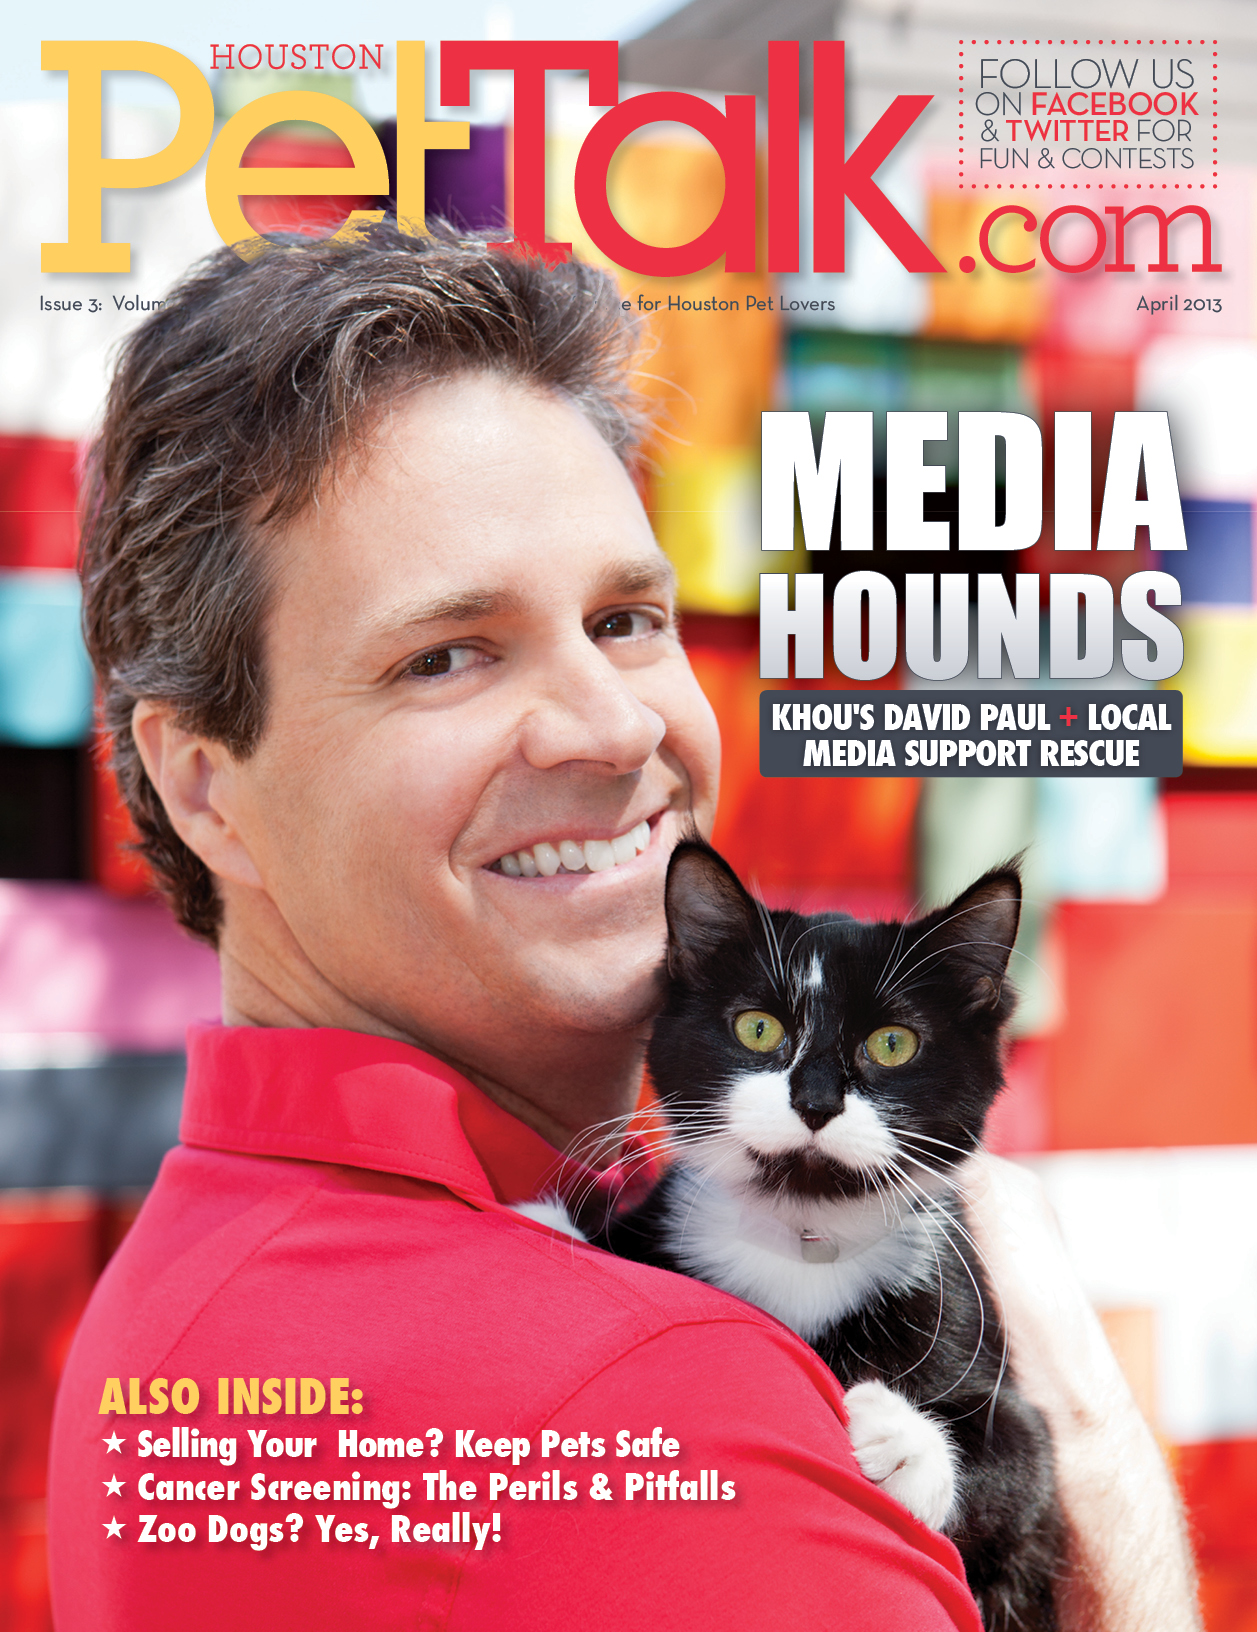 April 2013 Digital Issue of Houston PetTalk